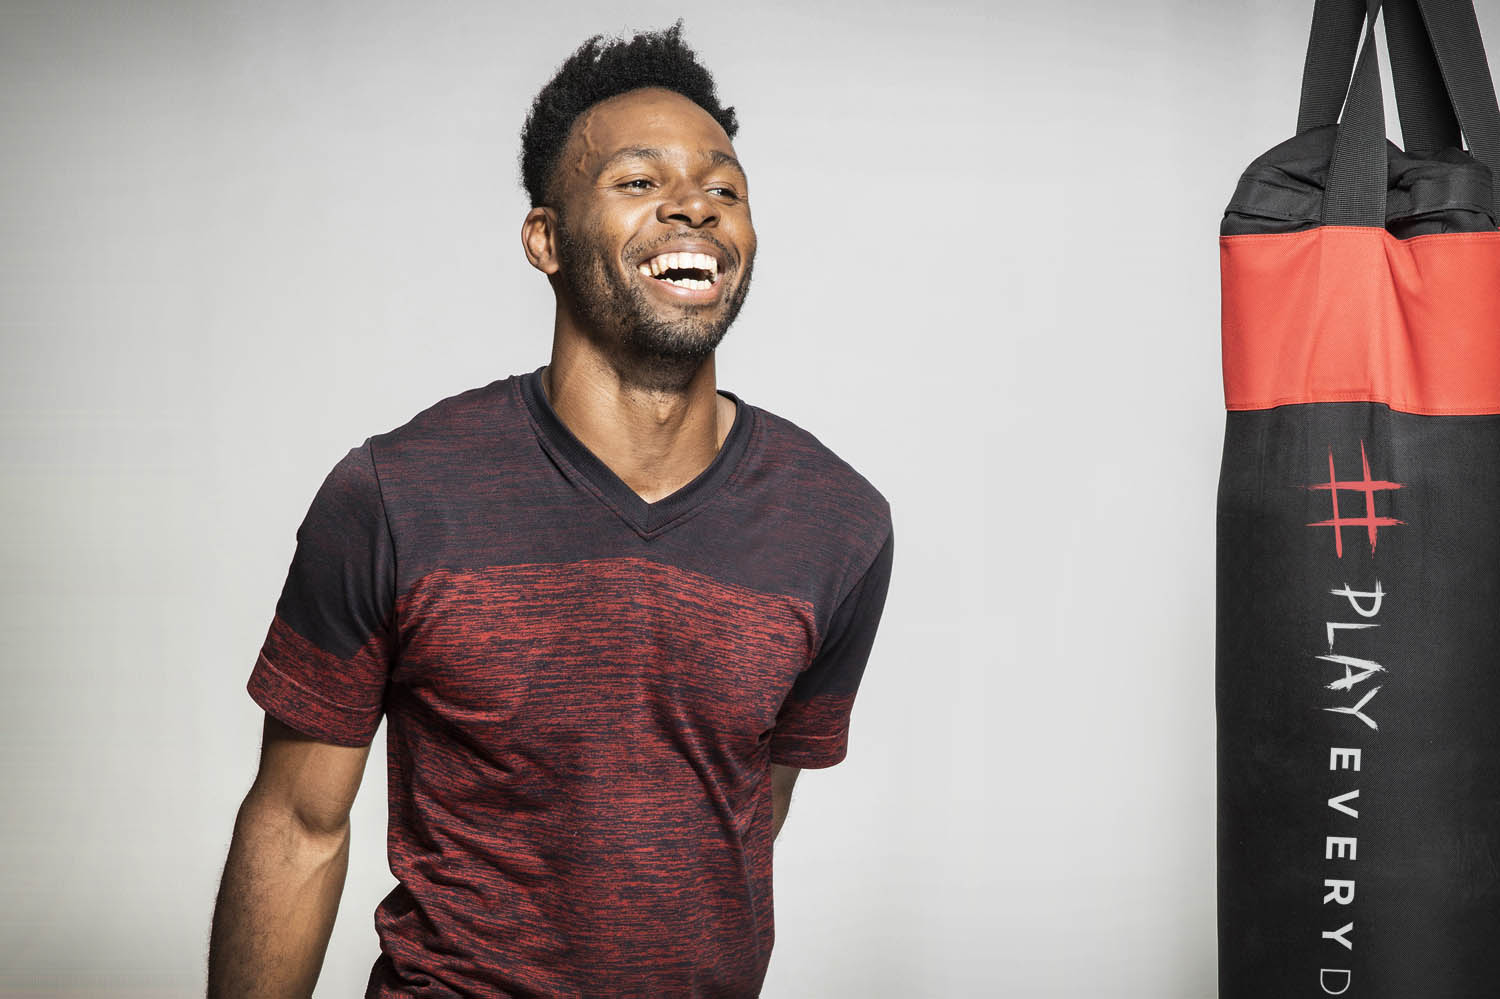 Jason smiles in his workout shirt in front of a punching bag